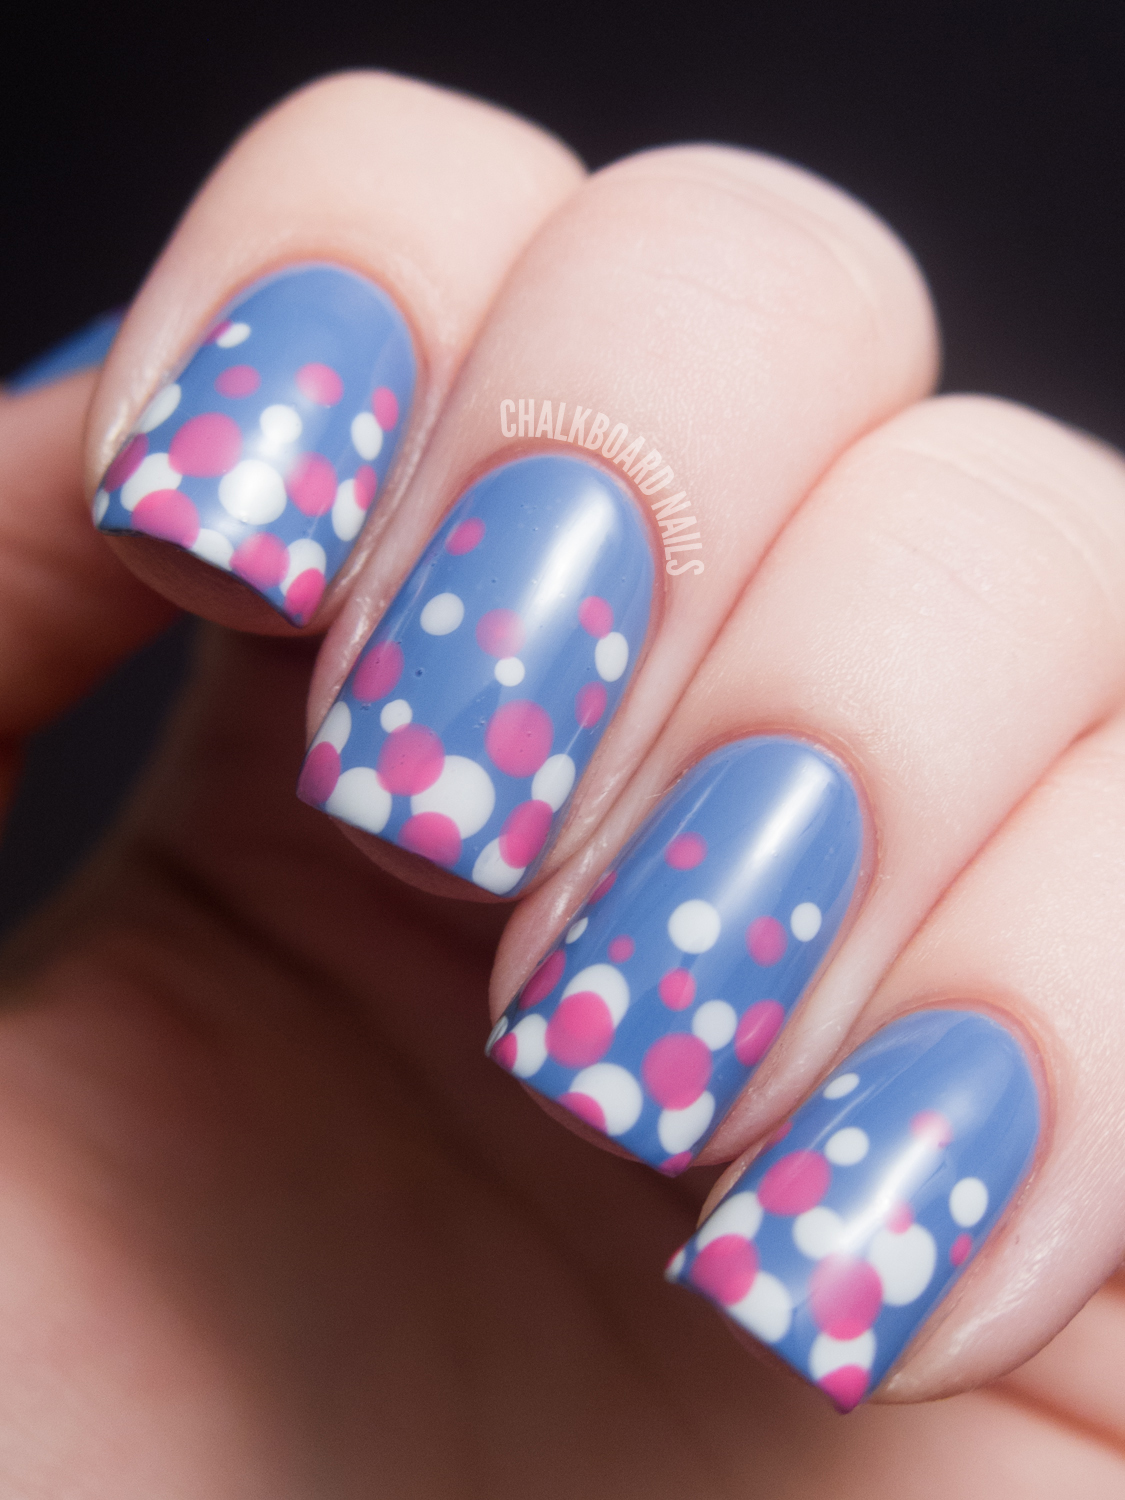 14 Chalkboard Blue Nail Designs Images